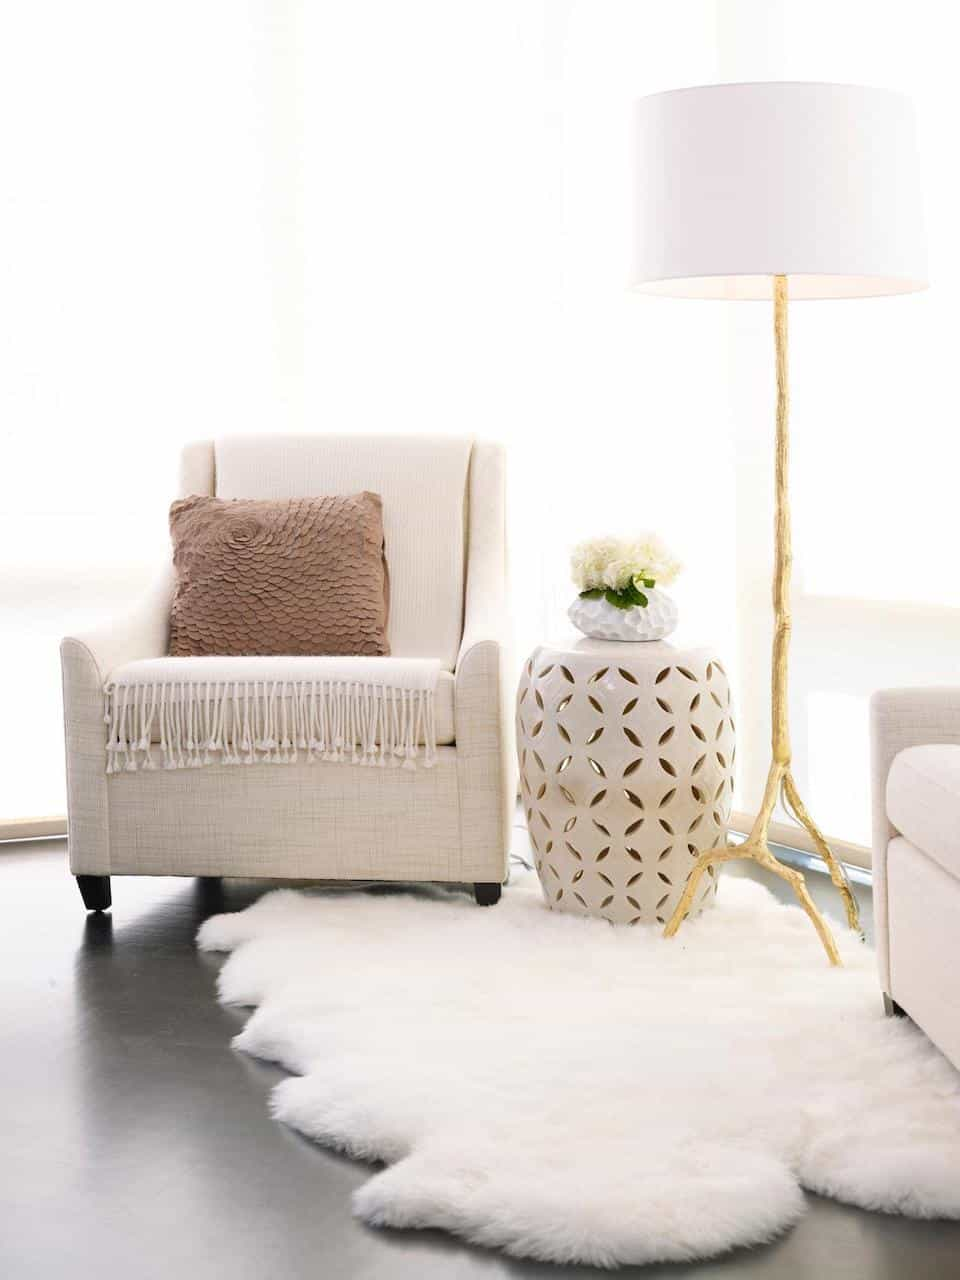 Fancy Sitting Room With White Chair And White Faux Sheepskin Rug (Image 11 of 15)